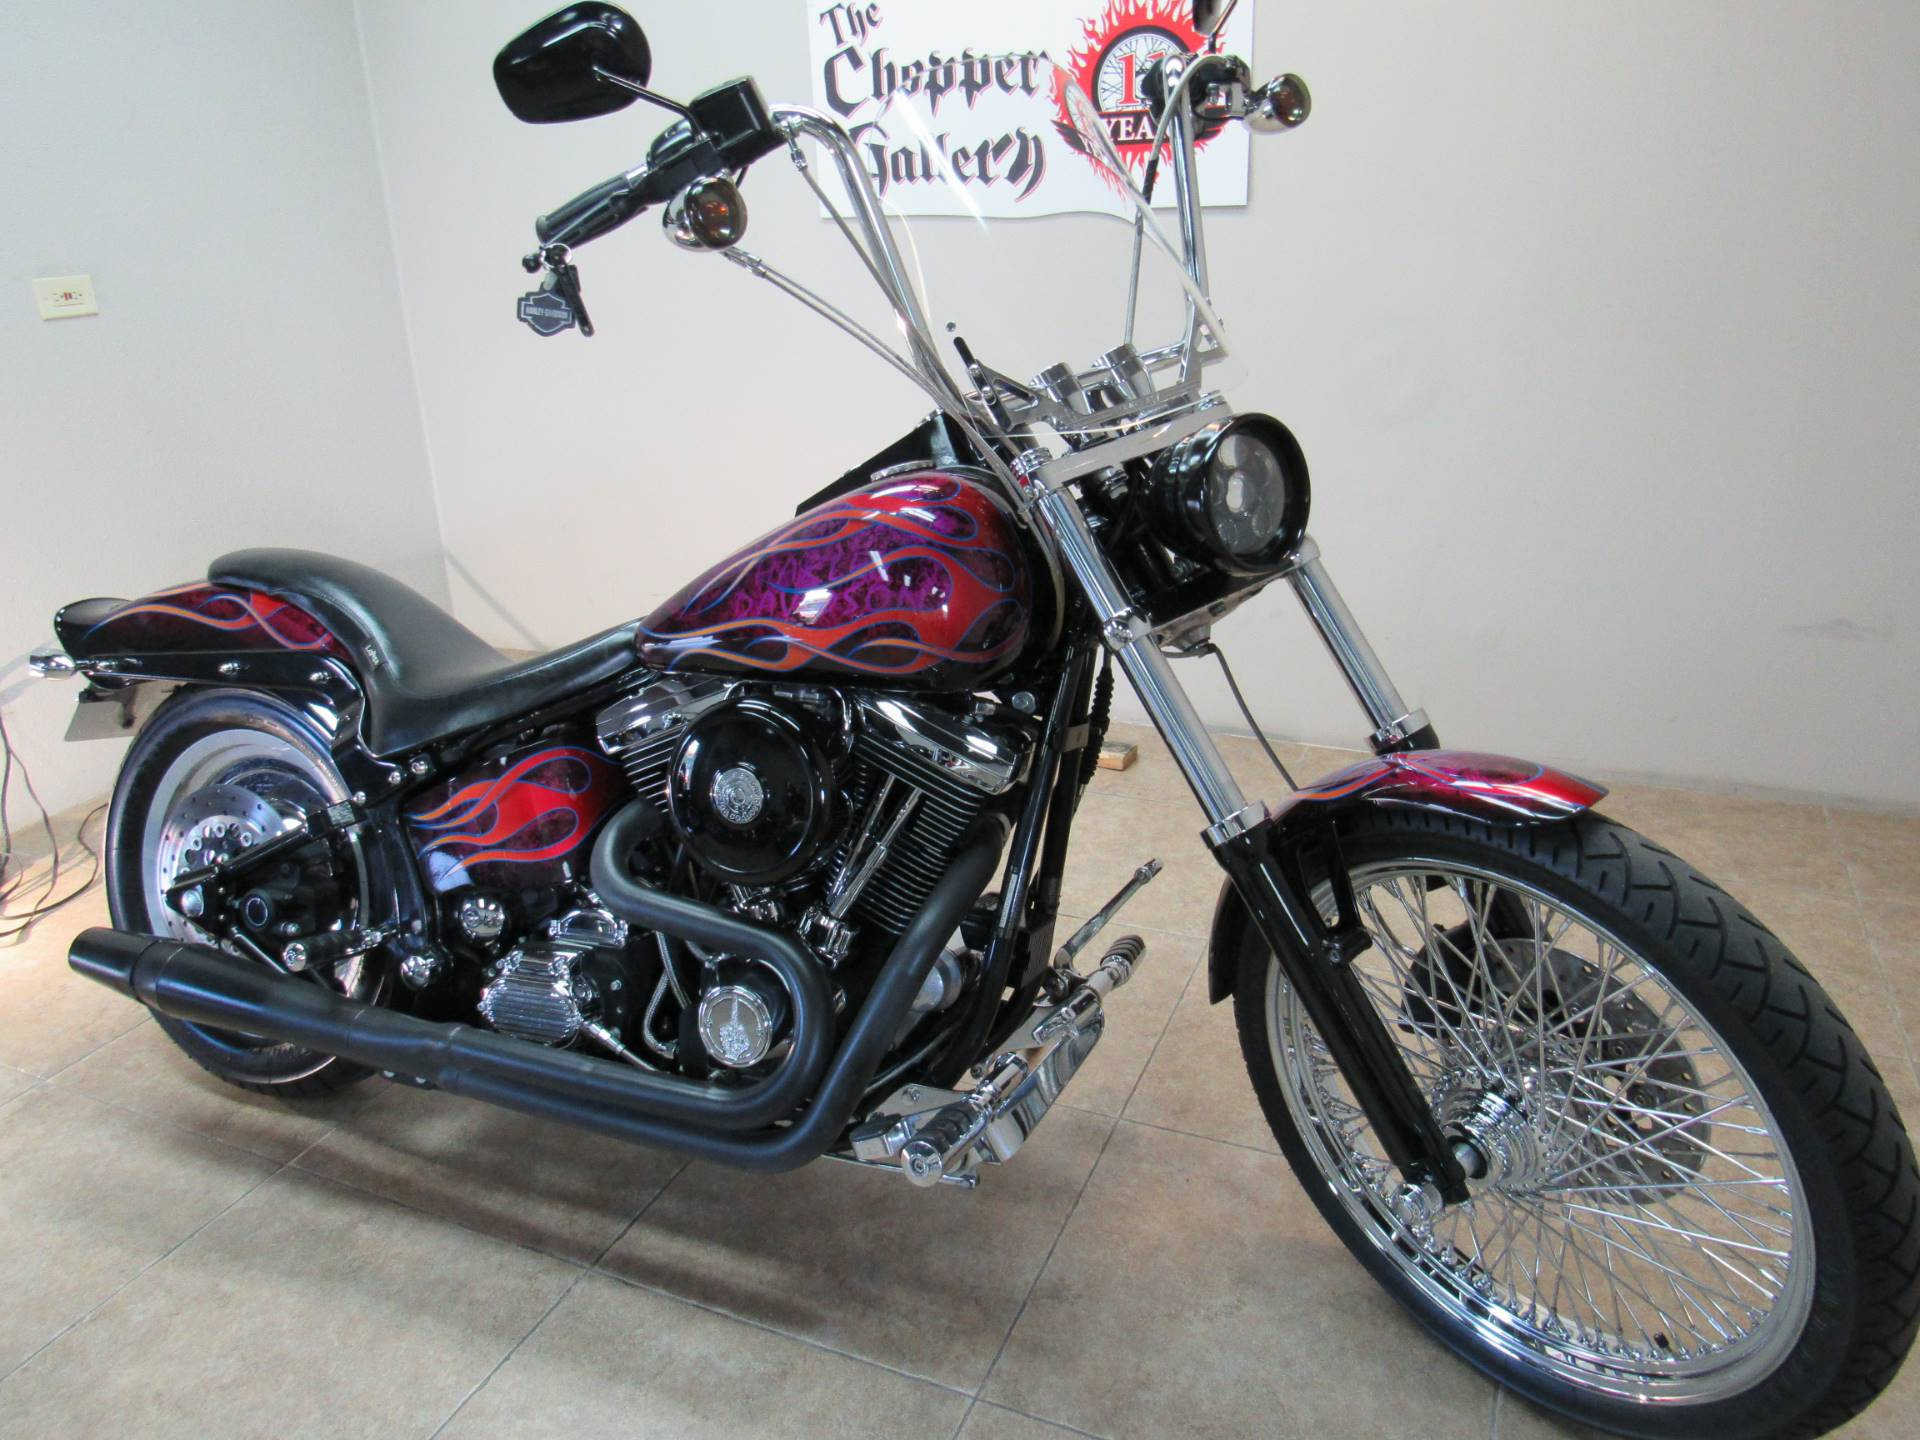 1996 Harley-Davidson softail custom in Temecula, California - Photo 20